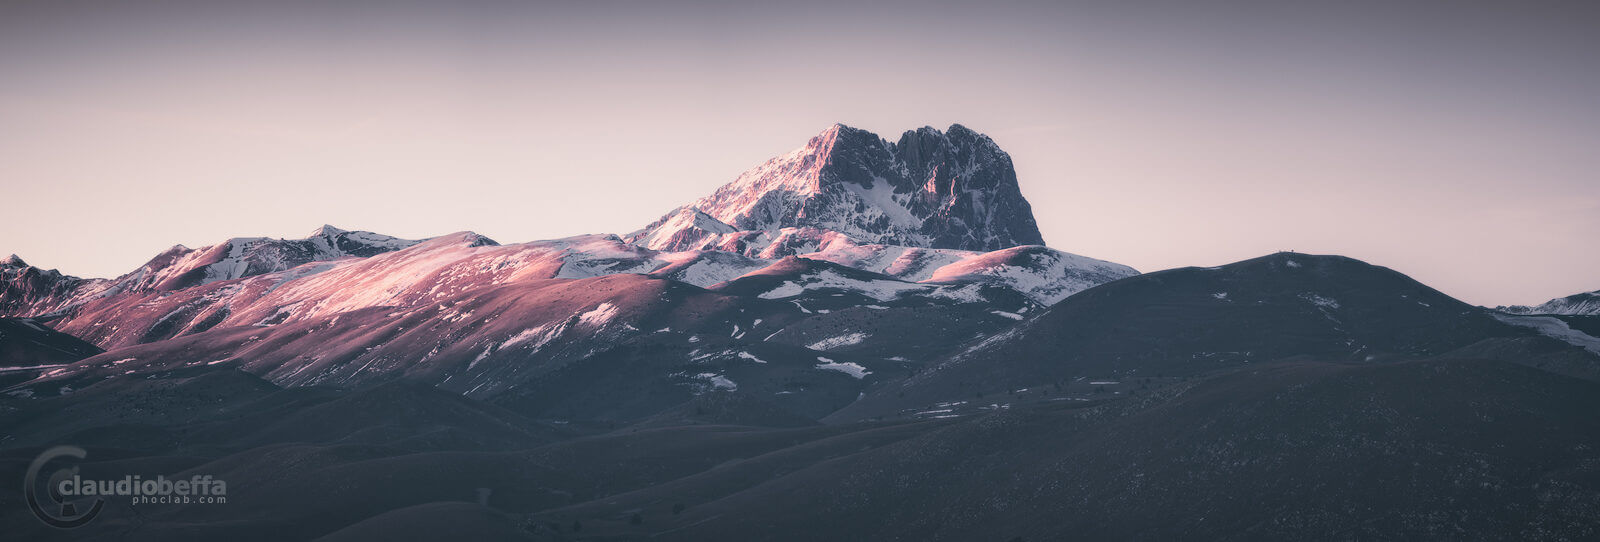 Great Horn, Abruzzo, Italy, Apennines, Rocca Calascio, Landscape, Sunset, Mountains, Winter, Snow, Nature, Panorama